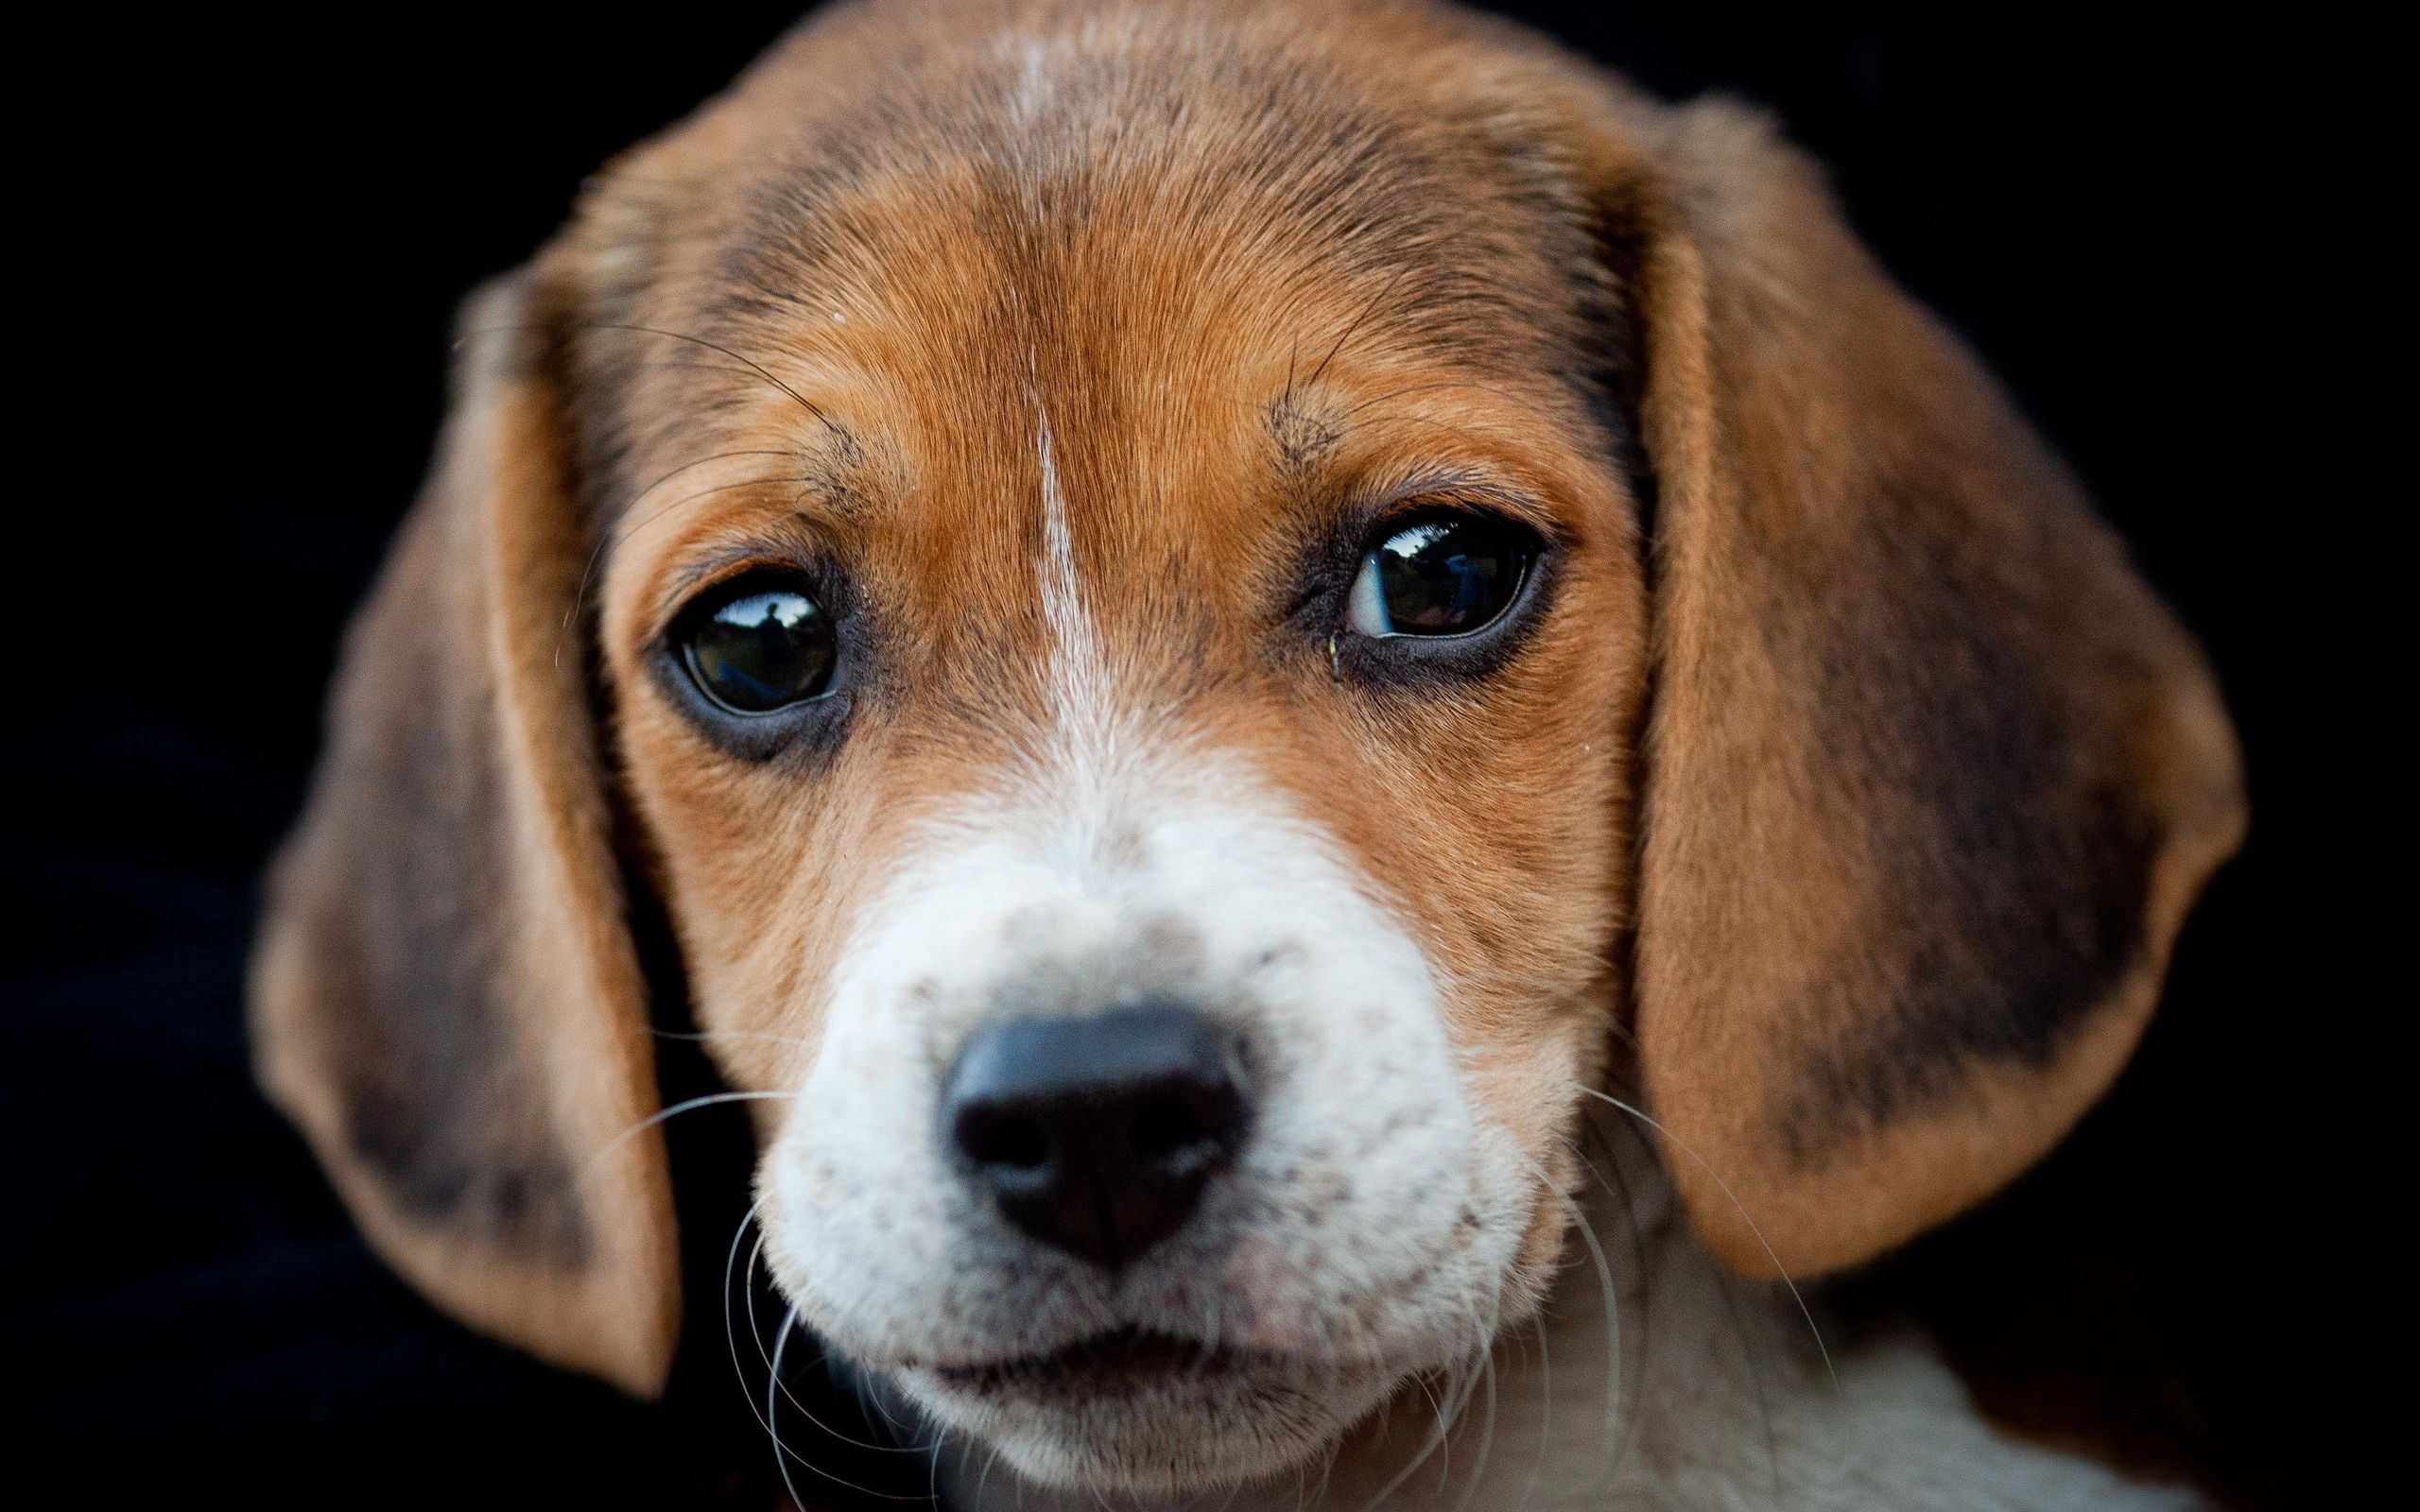 108655 download wallpaper Animals, Dog, Muzzle, Beagle, Sight, Opinion, Puppy screensavers and pictures for free